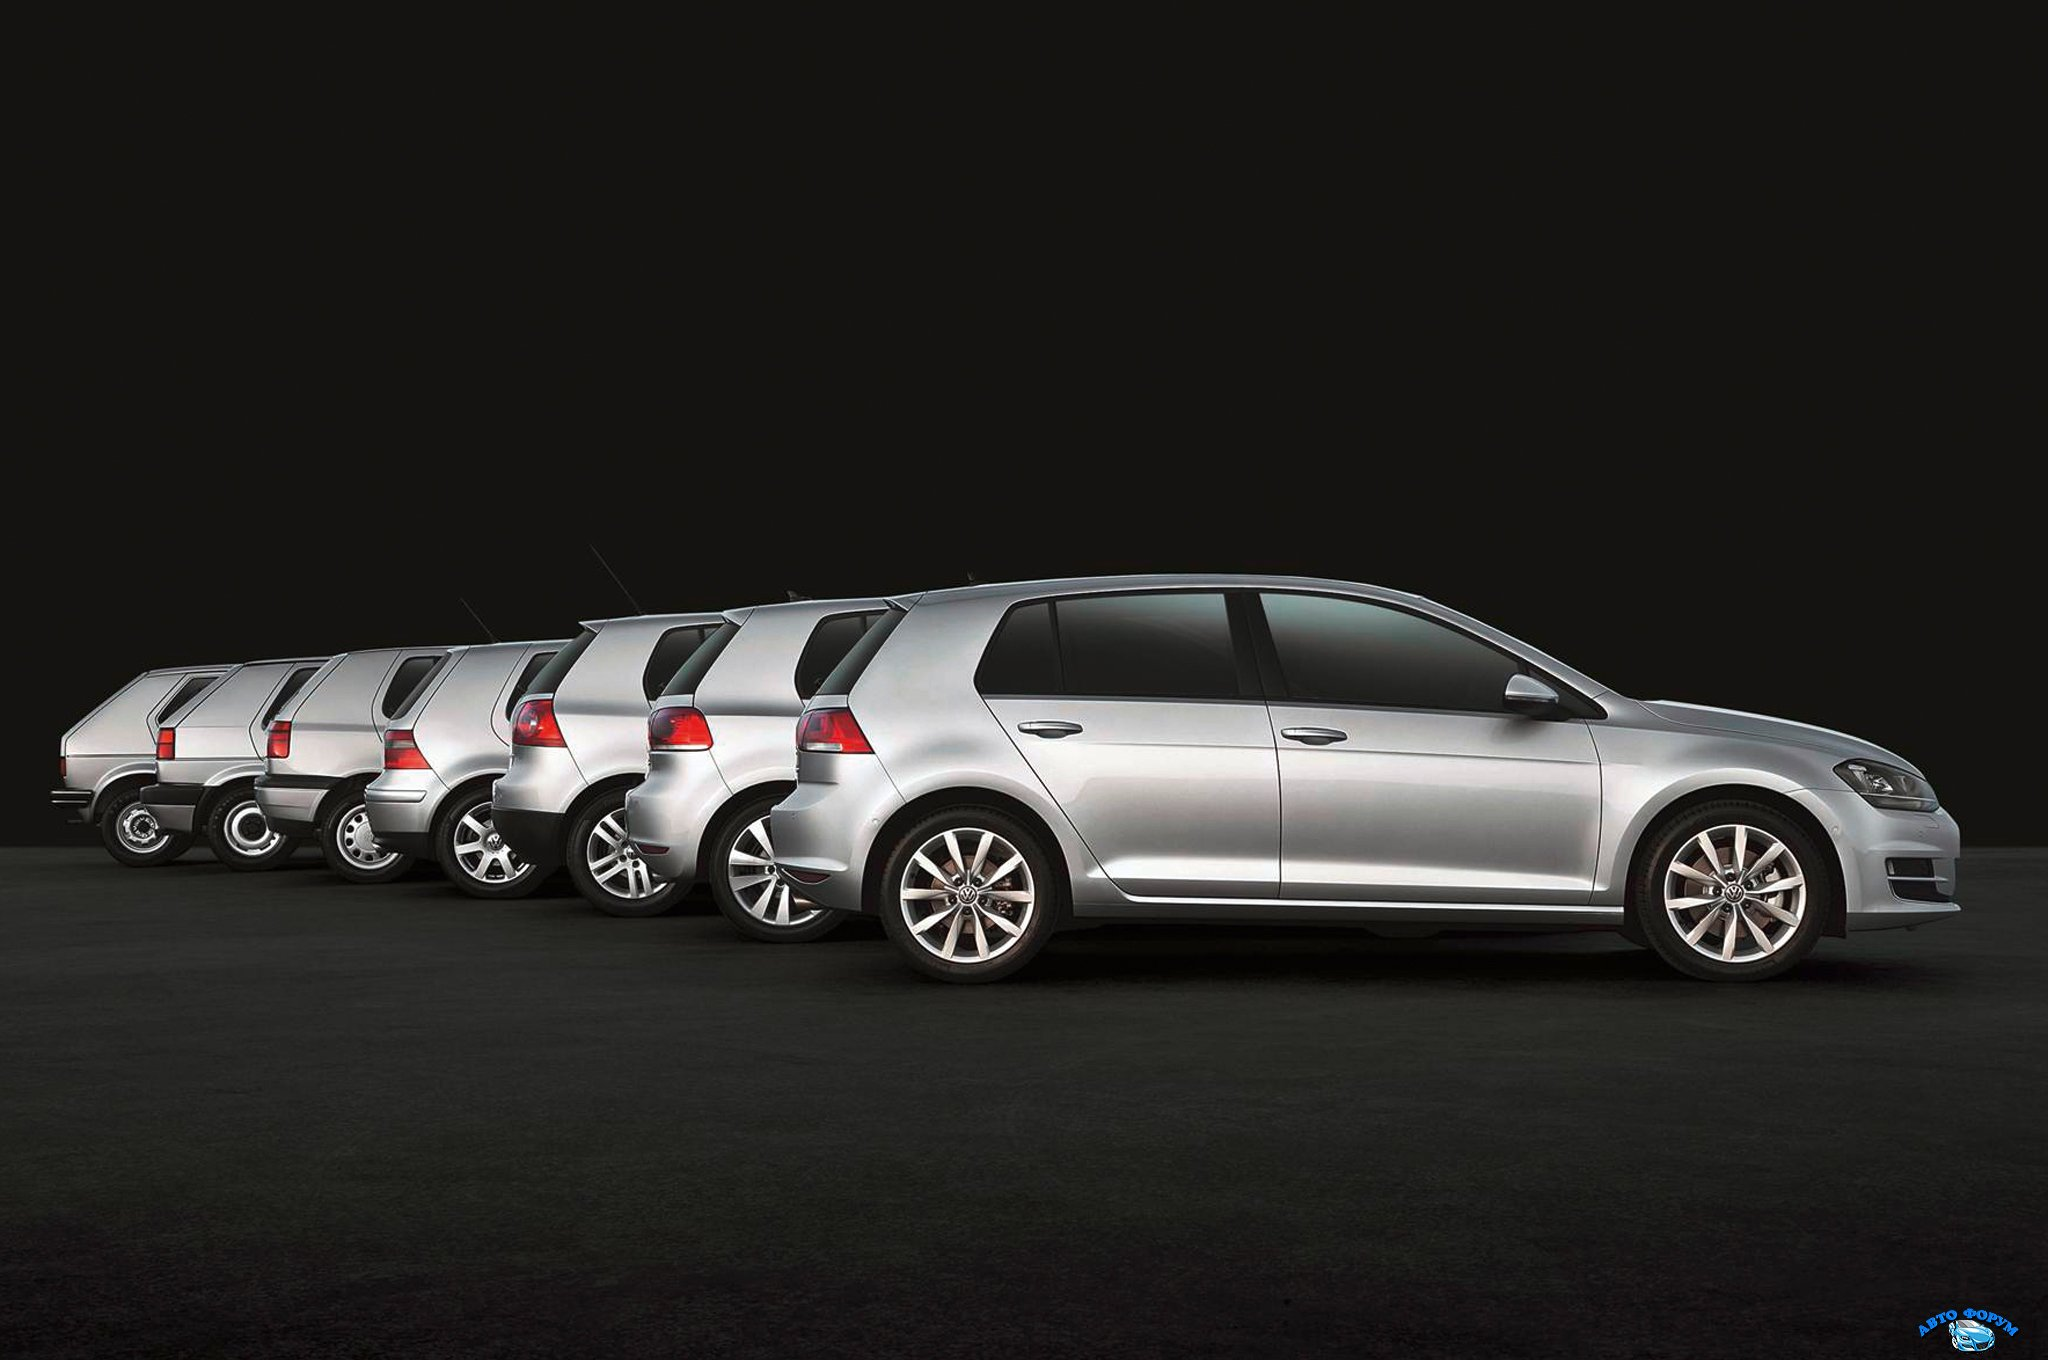 Volkswagen-Golf-all-generations.jpg